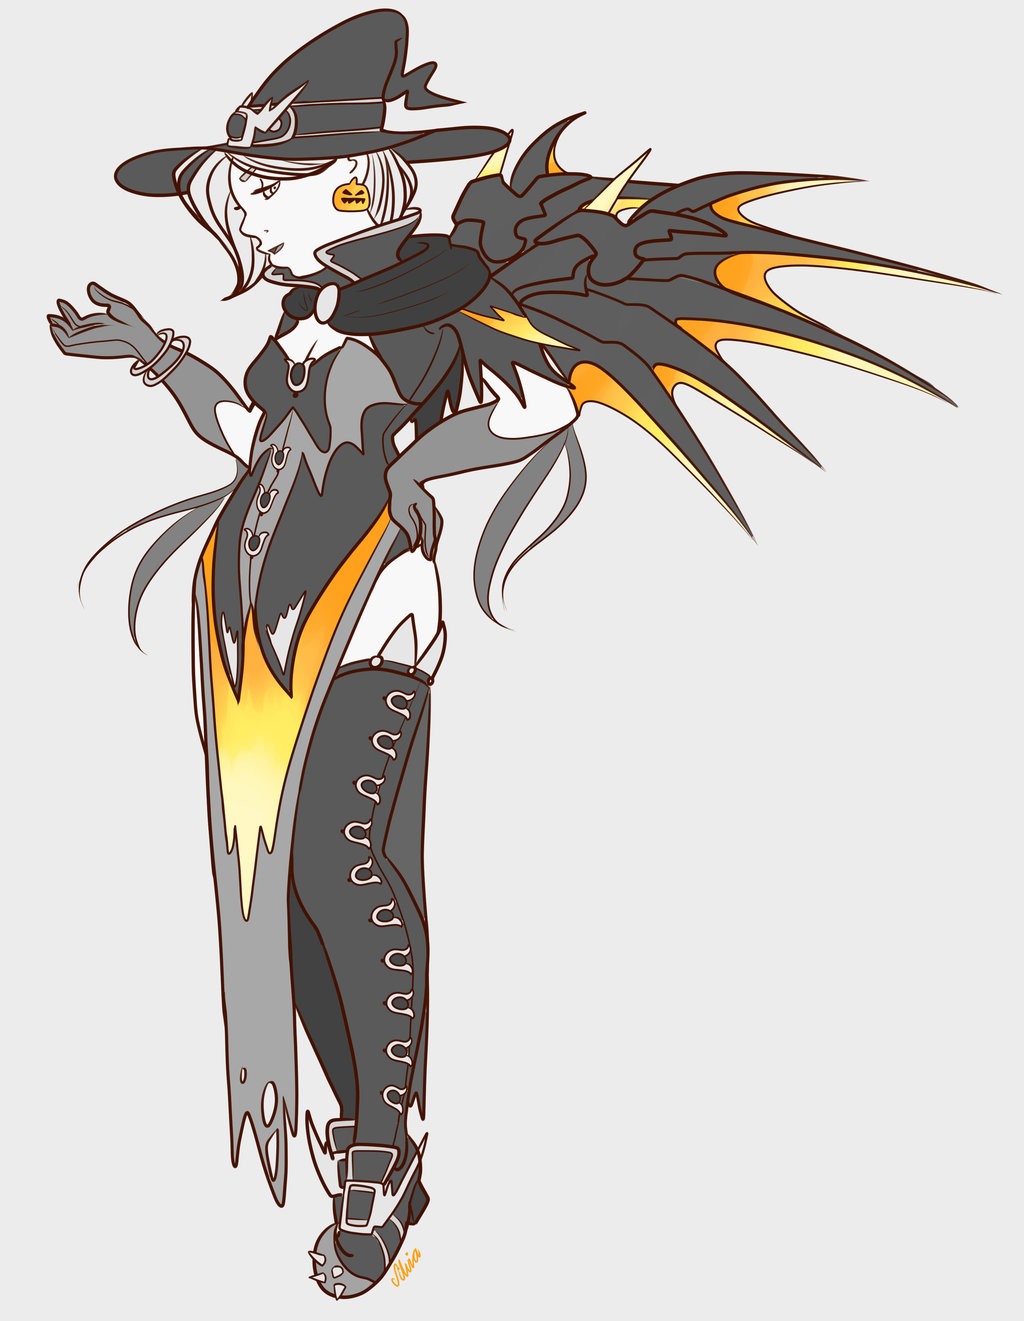 Witch Mercy by MissHeyThere on DeviantArt.